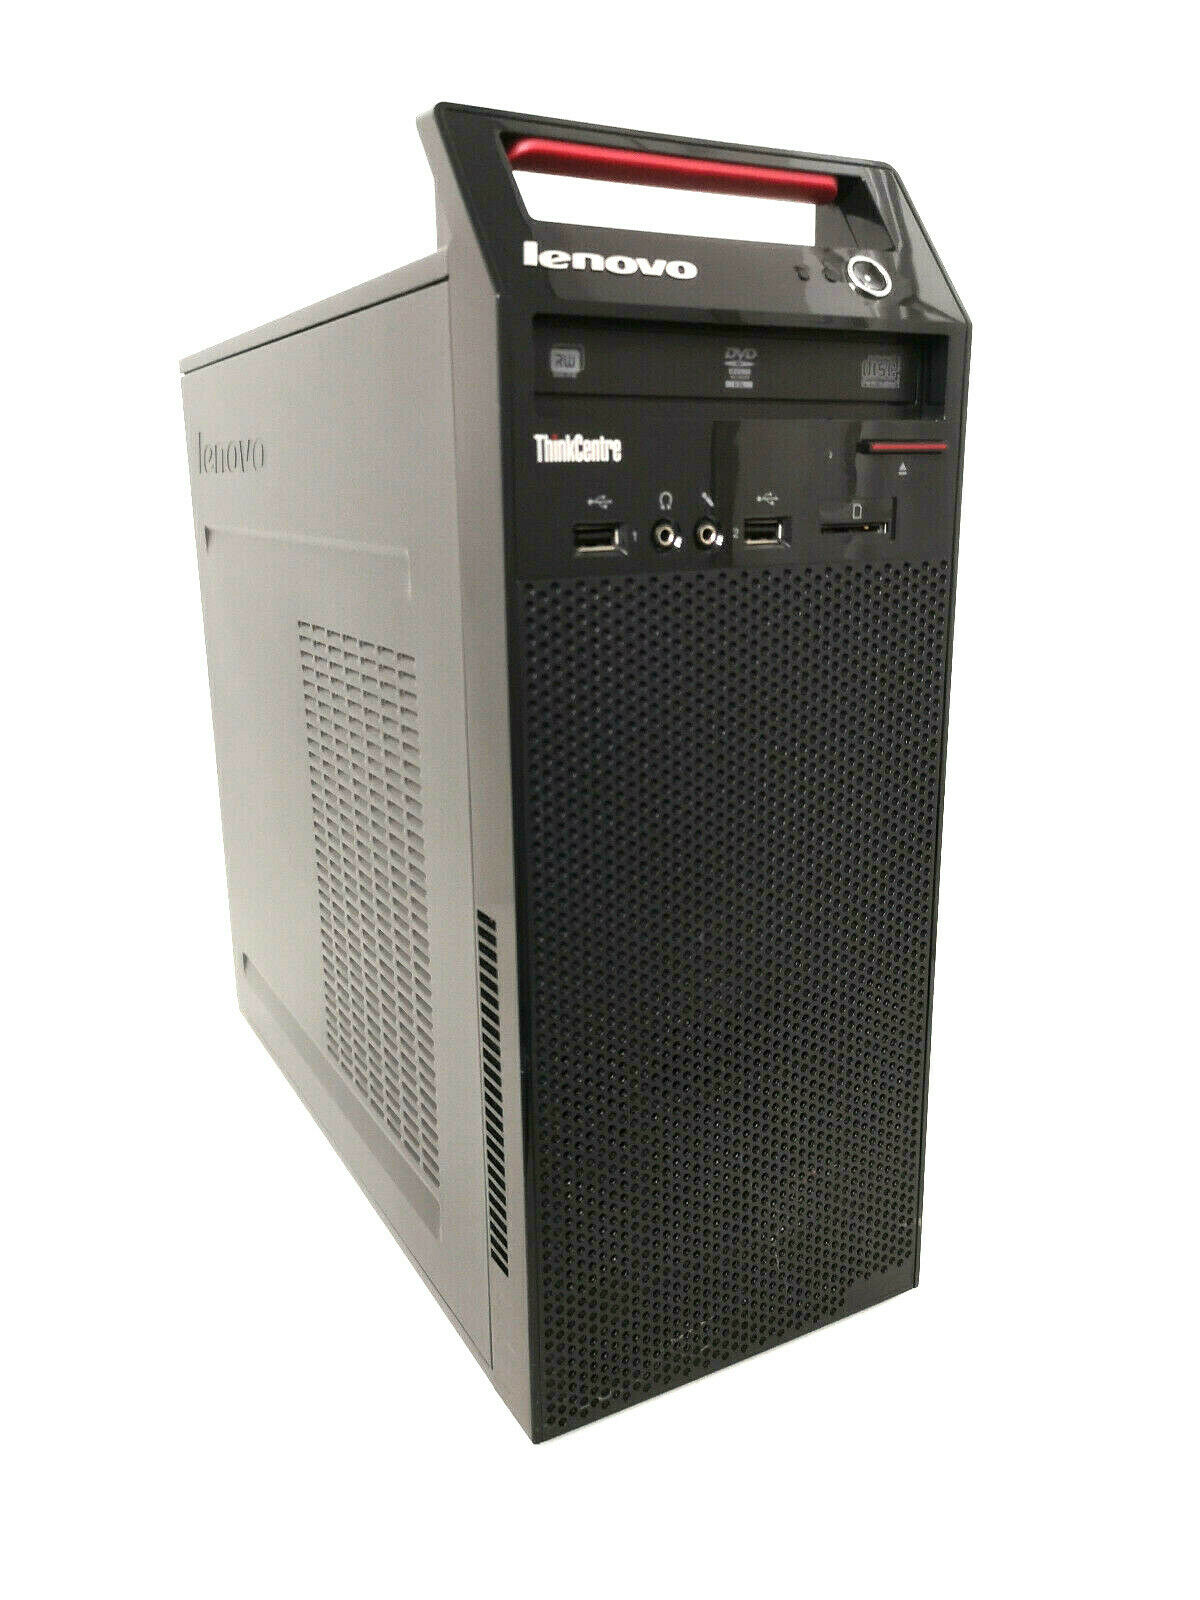 Lenovo-ThinkCentre-E73 - 137591